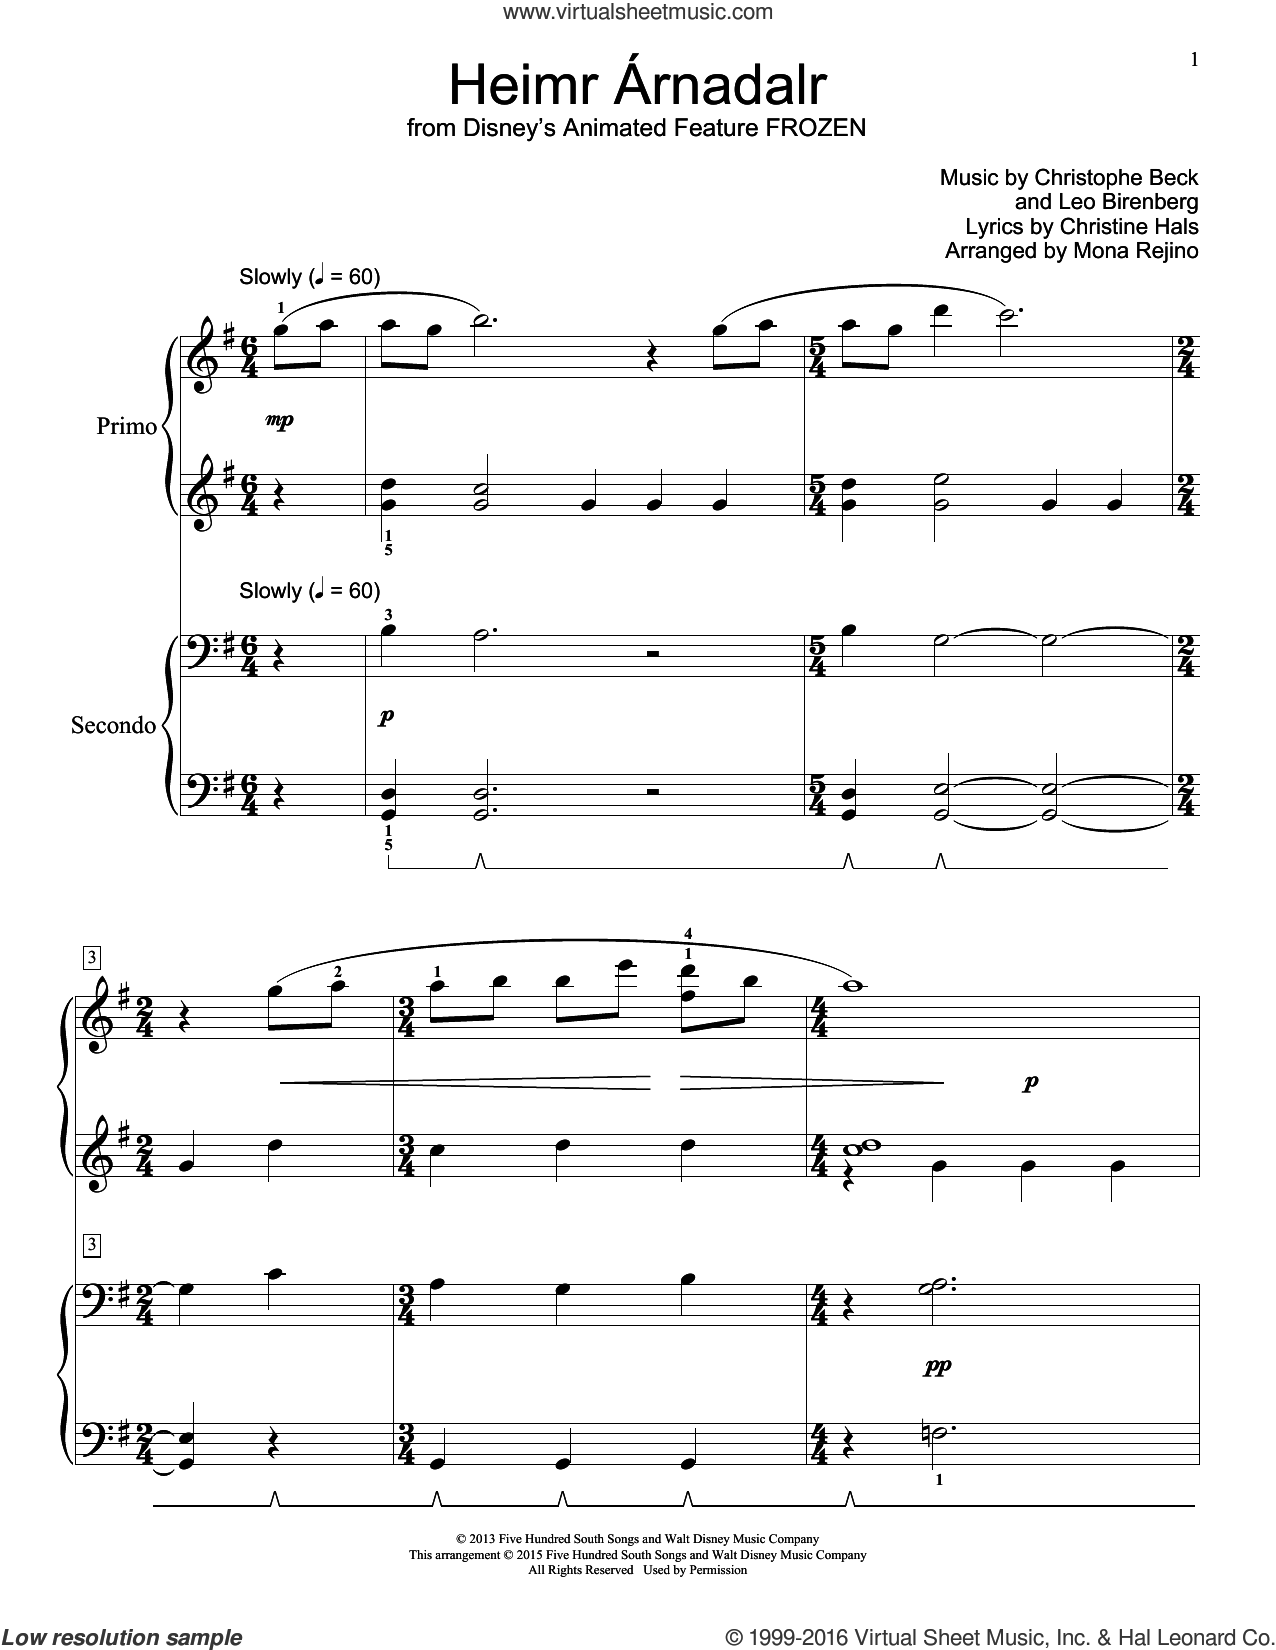 Heimr Arnadalr sheet music for piano four hands (duets) by Christophe Beck and Christine Hals. Score Image Preview.